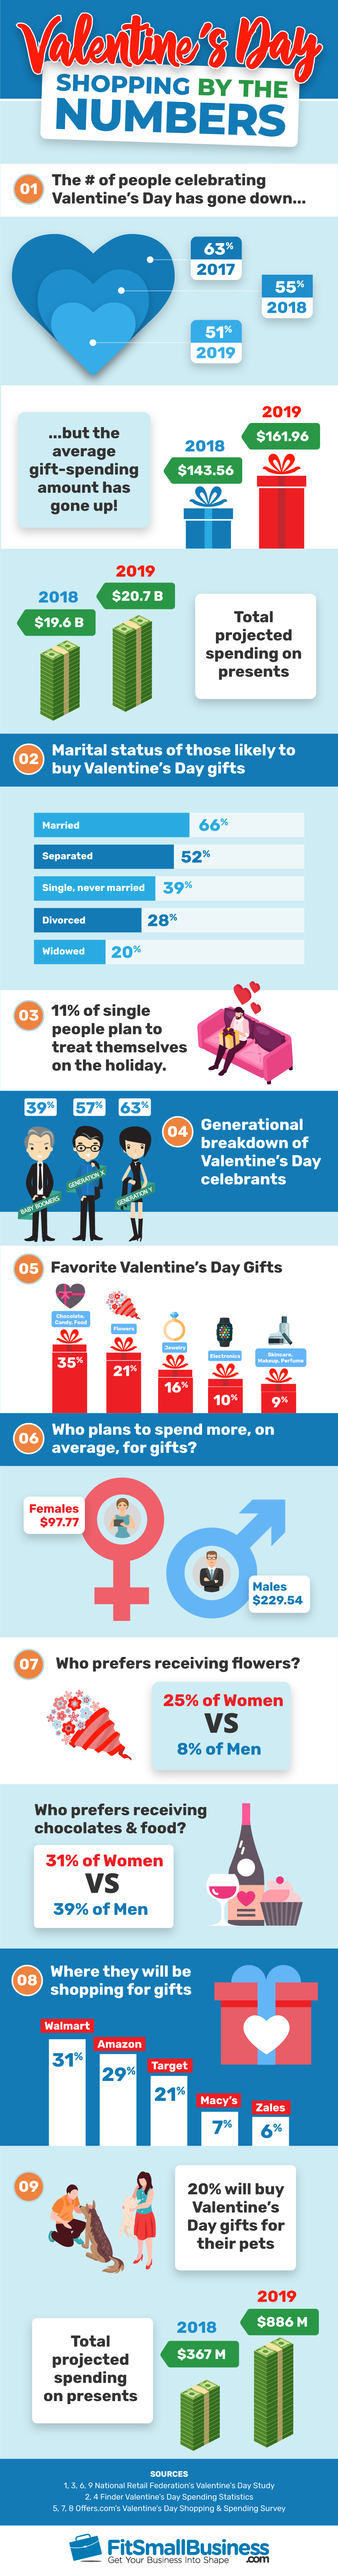 The Top Ten Worst Valentine's Day Gifts